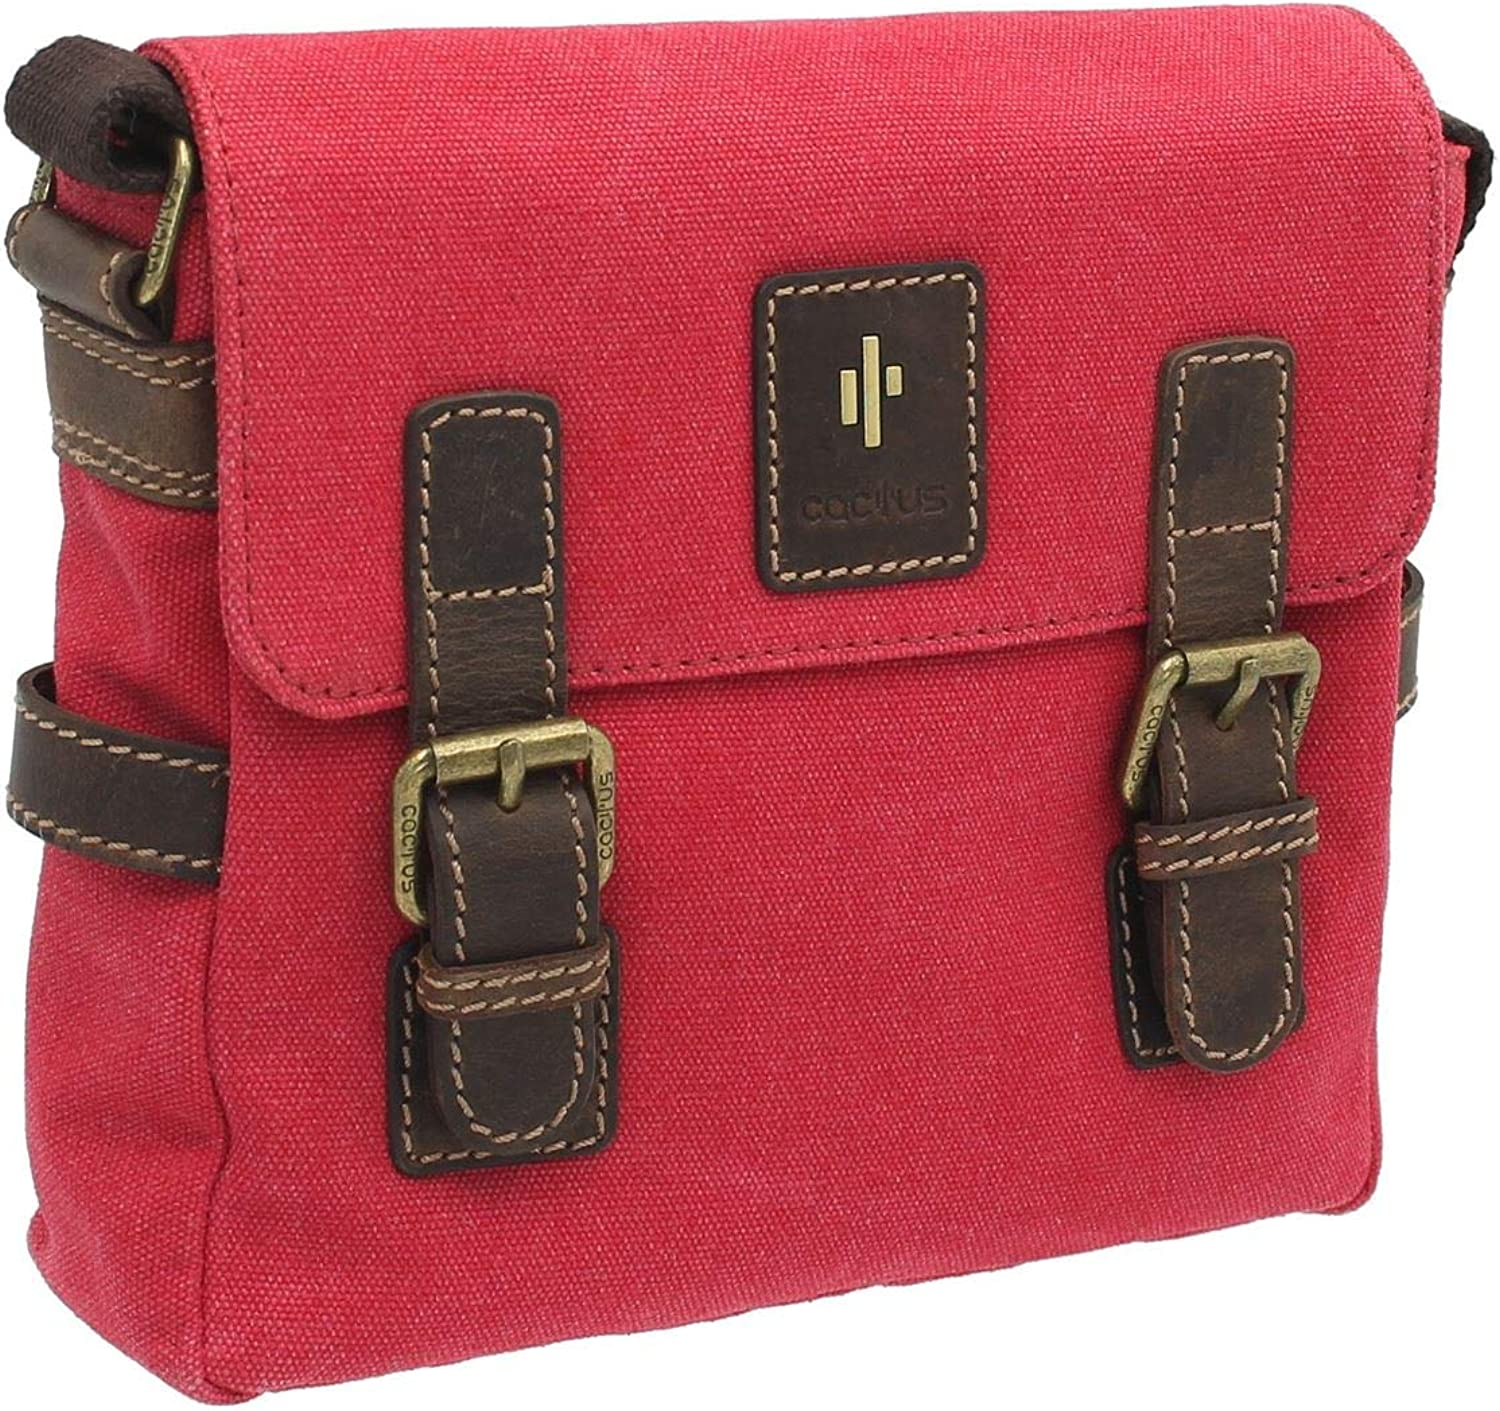 CACTUS Leinwand und Distressed geölte Ledertasche Messenger Bag CS808_81 CS808_81 CS808_81 Rot B07GQWVBP5 77be6c